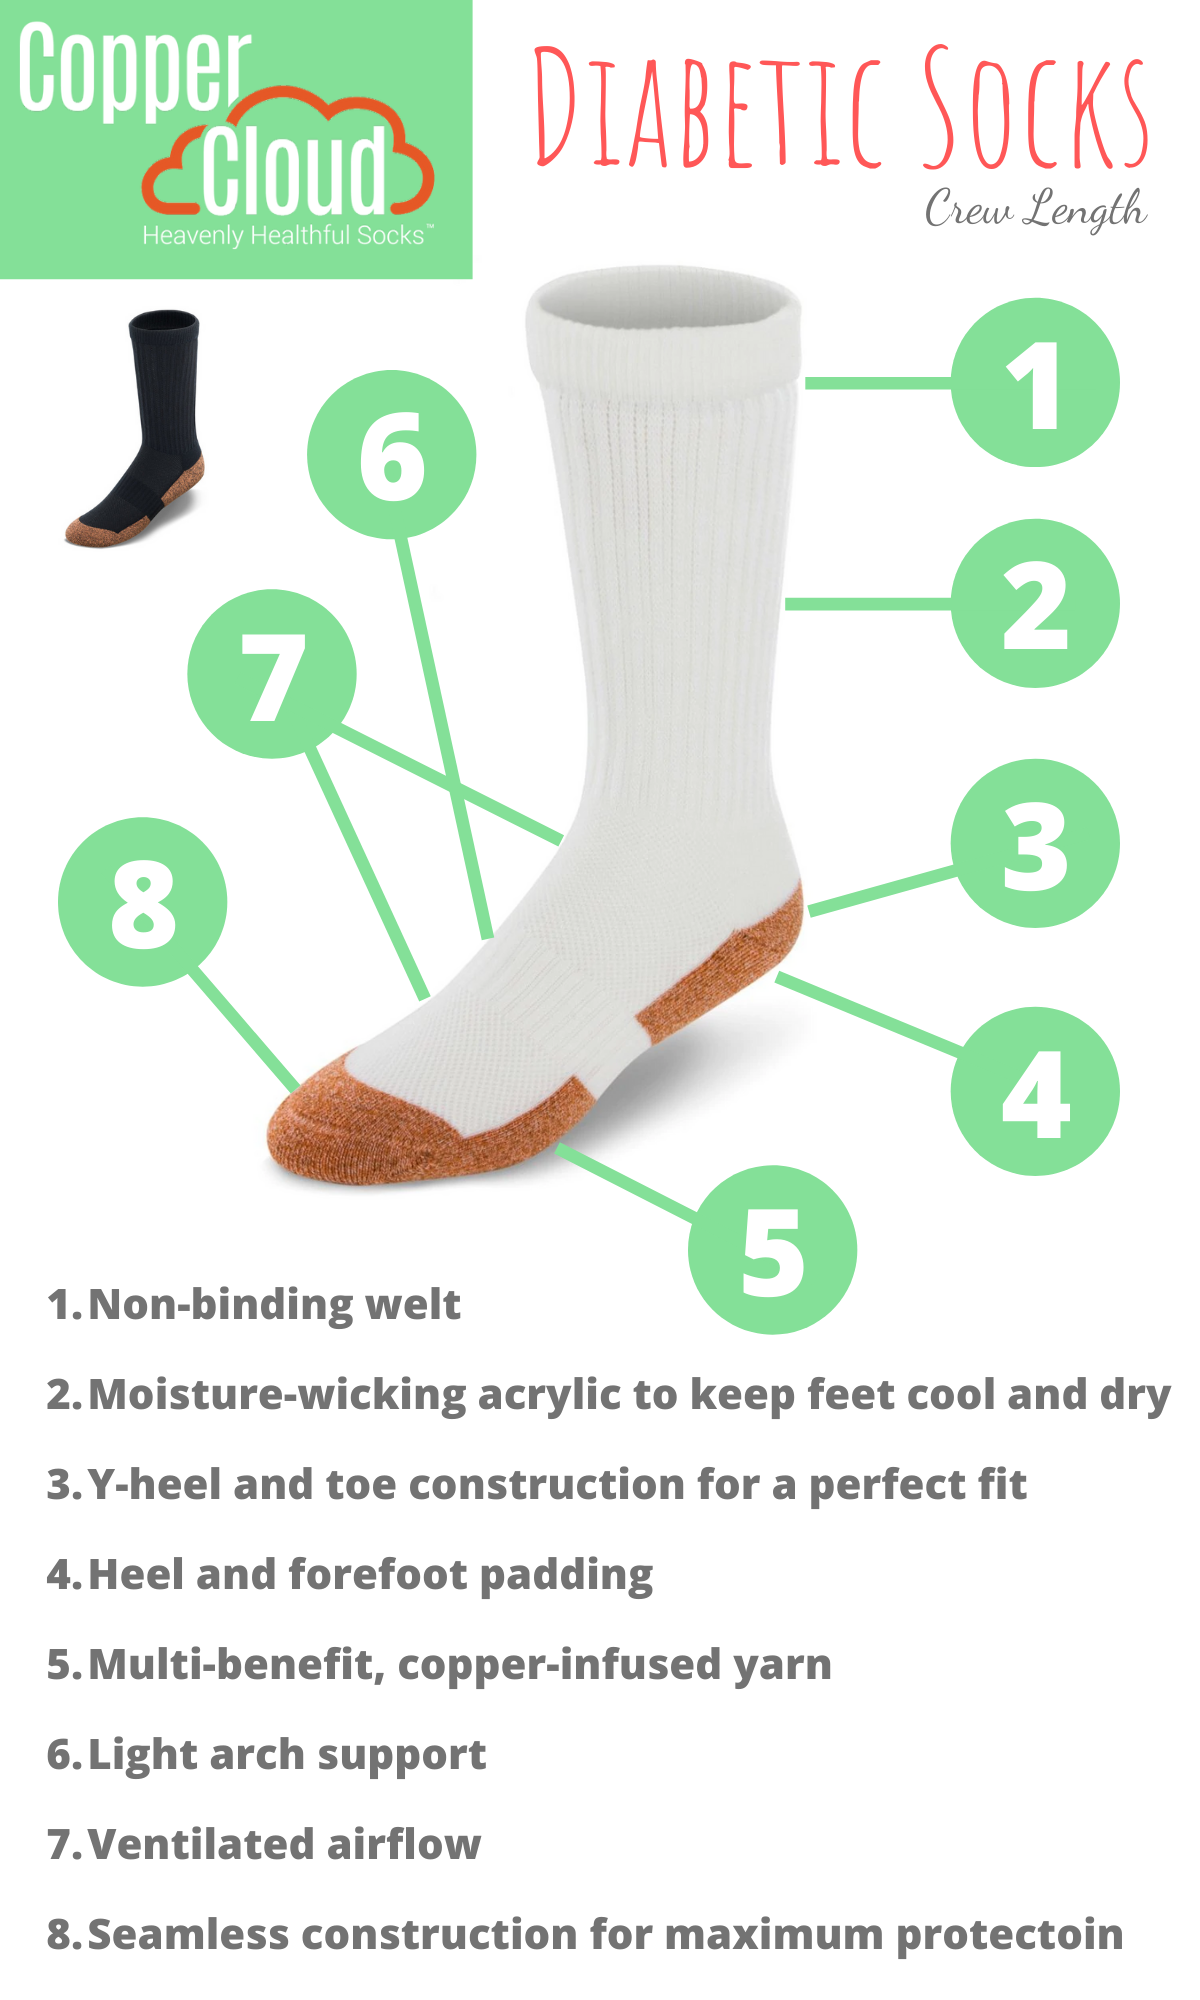 Apex Copper Cloud Crew Length Diabetic Socks